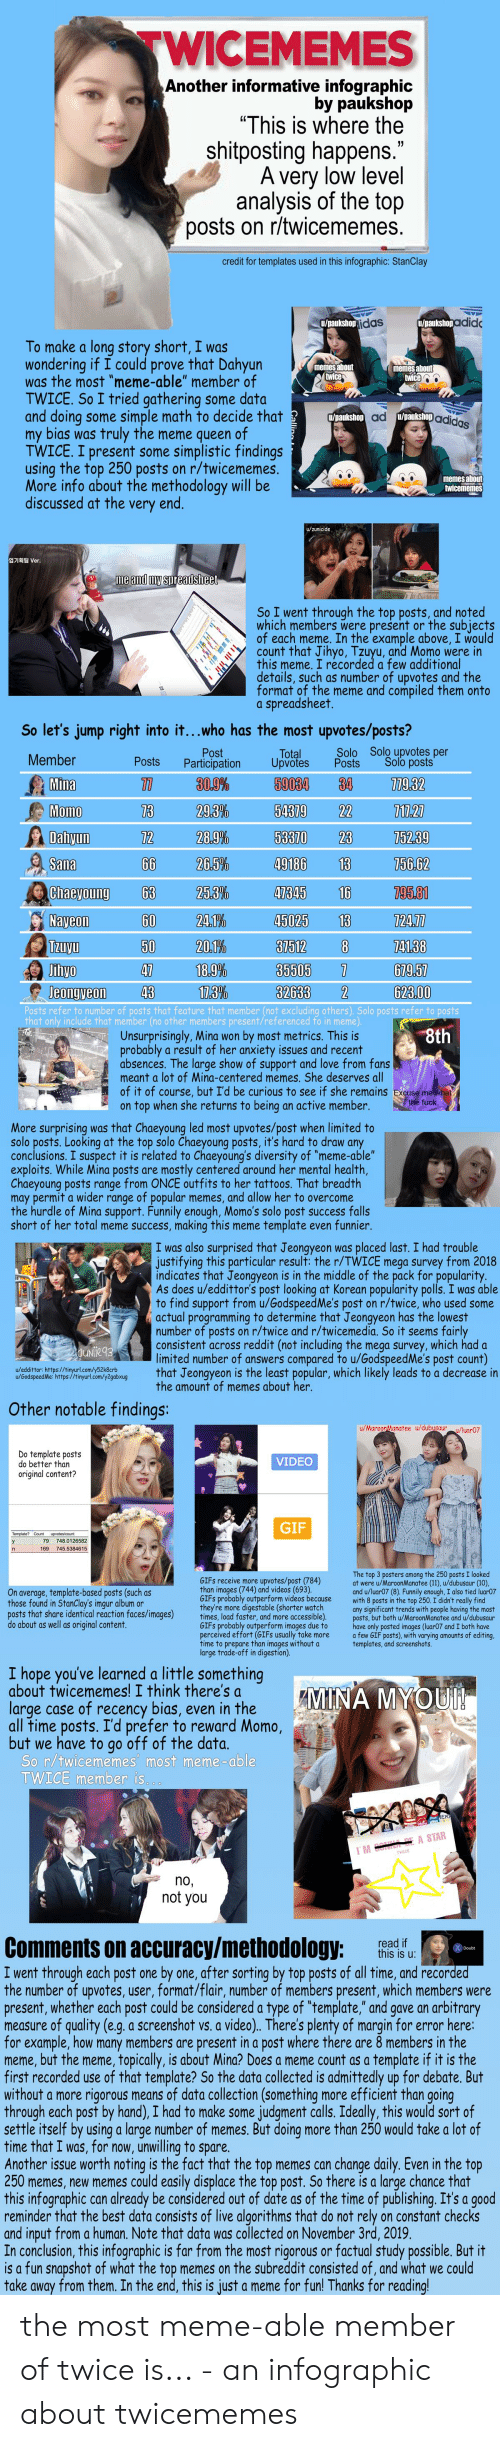 "Adidas, Gif, and Love: TWICEMEMES  Another informative infographic  by paukshop  ""This is where the  shitposting happens.  A very low level  analysis of the top  posts on r/twicememes.  credit for templates used in this infographic: StanClay  u/paukshop idas  u/paukshopadid  To make a long story short, I was  wondering if I could prove that Dahyun  was the most ""meme-able"" member of  TWICE. So I tried gathering some data  and doing some simple math to decide that  my bias was truly the meme queen of  TWICE.I present some simplistic findings  using the top 250 posts on r/twicememes.  More info about the methodology will be  discussed at the very end.  memes about  twice  memes about  twice  paukshop ad u/paukshop adidas  memes about  twicememes  u/zunicide  업기획팀 Ver.  me and my spreadsheet  So I went through the top posts, and noted  which members were present or the subjects  of each meme. In the example above, I would  Ccount that Jihyo, Tzuyu, and Momo were in  this meme. I recorded a few additional  details, such as number of upvotes and the  format of the meme and compiled them onto  a spreadsheet.  So let's jump right into it...who has the most upvotes/posts?  Solo Solo upvotes per  Posts  Post  Participation  Total  Upvotes  Member  Solo posts  Posts  59034  779.32  Mina  וו  30.9%  34  29.3%  73  22  717.27  Momo  54379  53370  752.39  72  28.9%  23  Dahyun  66  26.5%  49186  Sana  13  756.62  63  16  Chaeyoung  25.3%  47345  795.81  60  45025  Nayeon  24.1%  13  724.77  TZUVU  20.1%  50  741.38  37512  8  18.9%  47  35505  67.9.57  Jthyo  7  43  17.3%  Jeongyeon  32633  2  623.00  Posts refer to number of posts that feature that member (not excluding others). Solo posts refer to posts  that only include that member (no other members present/referenced fo in meme).  8th  Unsurprisingly, Mina won by most metrics. This is  probably a result of her anxiety issues and recent  absences. The large show of support and love from fans  meant a lot of Mina-centered memes. She deserves all  of it of course, but I'd be curious to see if she remains Excuse me what  on top when she returns to being an active member.  the fuck  More surprising was that Chaeyoung led most upvotes/post when limited to  solo posts. Looking at the top solo Chaeyoung posts, it's hard to draw any  conclusions. I suspect it is related to Chaeyoung's diversity of ""meme-able""  exploits. While Mina posts are mostly centered around her mental health,  Chaeyoung posts range from ONCE outfits to her tattoos. That breadth  may permit a wider range of popular memes, and allow her to overcome  the hurdle of Mina support. Funnily enough, Momo's solo post success falls  short of her total meme success, making this meme template even funnier.  I was also surprised that Jeongyeon was placed last. I had trouble  justifying this particular result: the r/TWICE mega survey from 2018  indicates that Jeongyeon is in the middle of the pack for popularity.  As does u/eddittor's post looking at Korean popularity polls. I was able  to find support from u/GodspeedMe's post on r/twice, who used some  actual programming to determine that Jeongyeon has the lowest  number of posts on r/twice and r/twicemedia. So it seems fairly  consistent across reddit (not including the mega survey, which had a  limited number of answers compared to u/GodspeedMe's post count)  that Jeongyeon is the least popular, which likely leads to a decrease in  the amount of memes about her.  2aUNite93  u/eddittor: https://tinyurl.com/y52k8crb  u/GodspeedMe: https://tinyurl.com/y2gabxug  Other notable findings:  u/MaroonManatee u/dubusauru/luar07  Do template posts  do better than  original content?  VIDEO  GIF  Template? Count  upvotes/count  79  748.0126582  y  169  745.5384615  The top 3 posters among the 250 posts I looked  at were u/MaroonManatee (11), u/dubusaur (10),  and u/luar07 (8). Funnily enough, I also tied luar07  with 8 posts in the top 250. I didn't really find  any significant trends with people having the most  posts, but both u/MaroonManatee and u/dubusaur  have only posted images (luar07 and I both have  a few GIF posts), with varying amounts of editing,  templates, and screenshots.  GIFS receive more upvotes/post (784)  than images (744) and videos (693)  GIFS probably outperform videos because  they're more digestable (shorter watch  times, load faster, and more accessible).  GIFS probably outperform images due to  perceived effort (GIFS usually take more  time to prepare than images without a  large trade-off in digestion).  On average, template-based posts (such as  those found in StanClay's imgur album or  posts that share identical reaction faces/images)  do about as well as original content.  I hope you've learned a little something  about twicememes! I think there's a  large case of recency bias, even in the  all time posts. I'd prefer to reward Momo,  but we have to go off of the data.  So r/twicememes' most meme- able  TWICE member is..  MINA MYOUN  A STAR  M s  TWICE  no,  not you  Comments on accuracy/methodology:  I went through each post one by one, after sorting by top posts of all time, and recorded  the number of upvotes, user, format/flair, number of members present, which members were  present, whether each post could be considered a type of ""template,"" and gave an arbitrary  measure of quality (e.g. a screenshot vs. a video). There's plenty of margin for error here:  for example, how many members are present in a post where there are 8 members in the  meme, but the meme, topically, is about Mina? Does a meme count as a template if it is the  first recorded use of that template? So the data collected is admittedly up for debate. But  without a more rigorous means of data collection (something more efficient than going  through each post by hand), I had to make some judgment calls. Ideally, this would sort of  settle itself by using a large number of memes. But doing more than 250 would takea lot of  time that I was, for now, unwilling to spare.  Another issue worth noting is the fact that the top memes can change daily. Even in the top  250 memes, new memes could easily displace the top post. So there is a large chance that  this infographic can already be considered out of date as of the time of publishing. It's a good  reminder that the best data consists of live algorithms that do not rely on constant checks  and input from a human. Note that data was collected on November 3rd, 2019  In conclusion, this infographic is far from the most rigorous or factual study possible. But it  is a fun snapshot of what the top memes on the subreddit consisted of, and what we could  take away from them. In the end, this is just a meme for fun! Thanks for reading!  read if  this is u:  X Doubt the most meme-able member of twice is... - an infographic about twicememes"